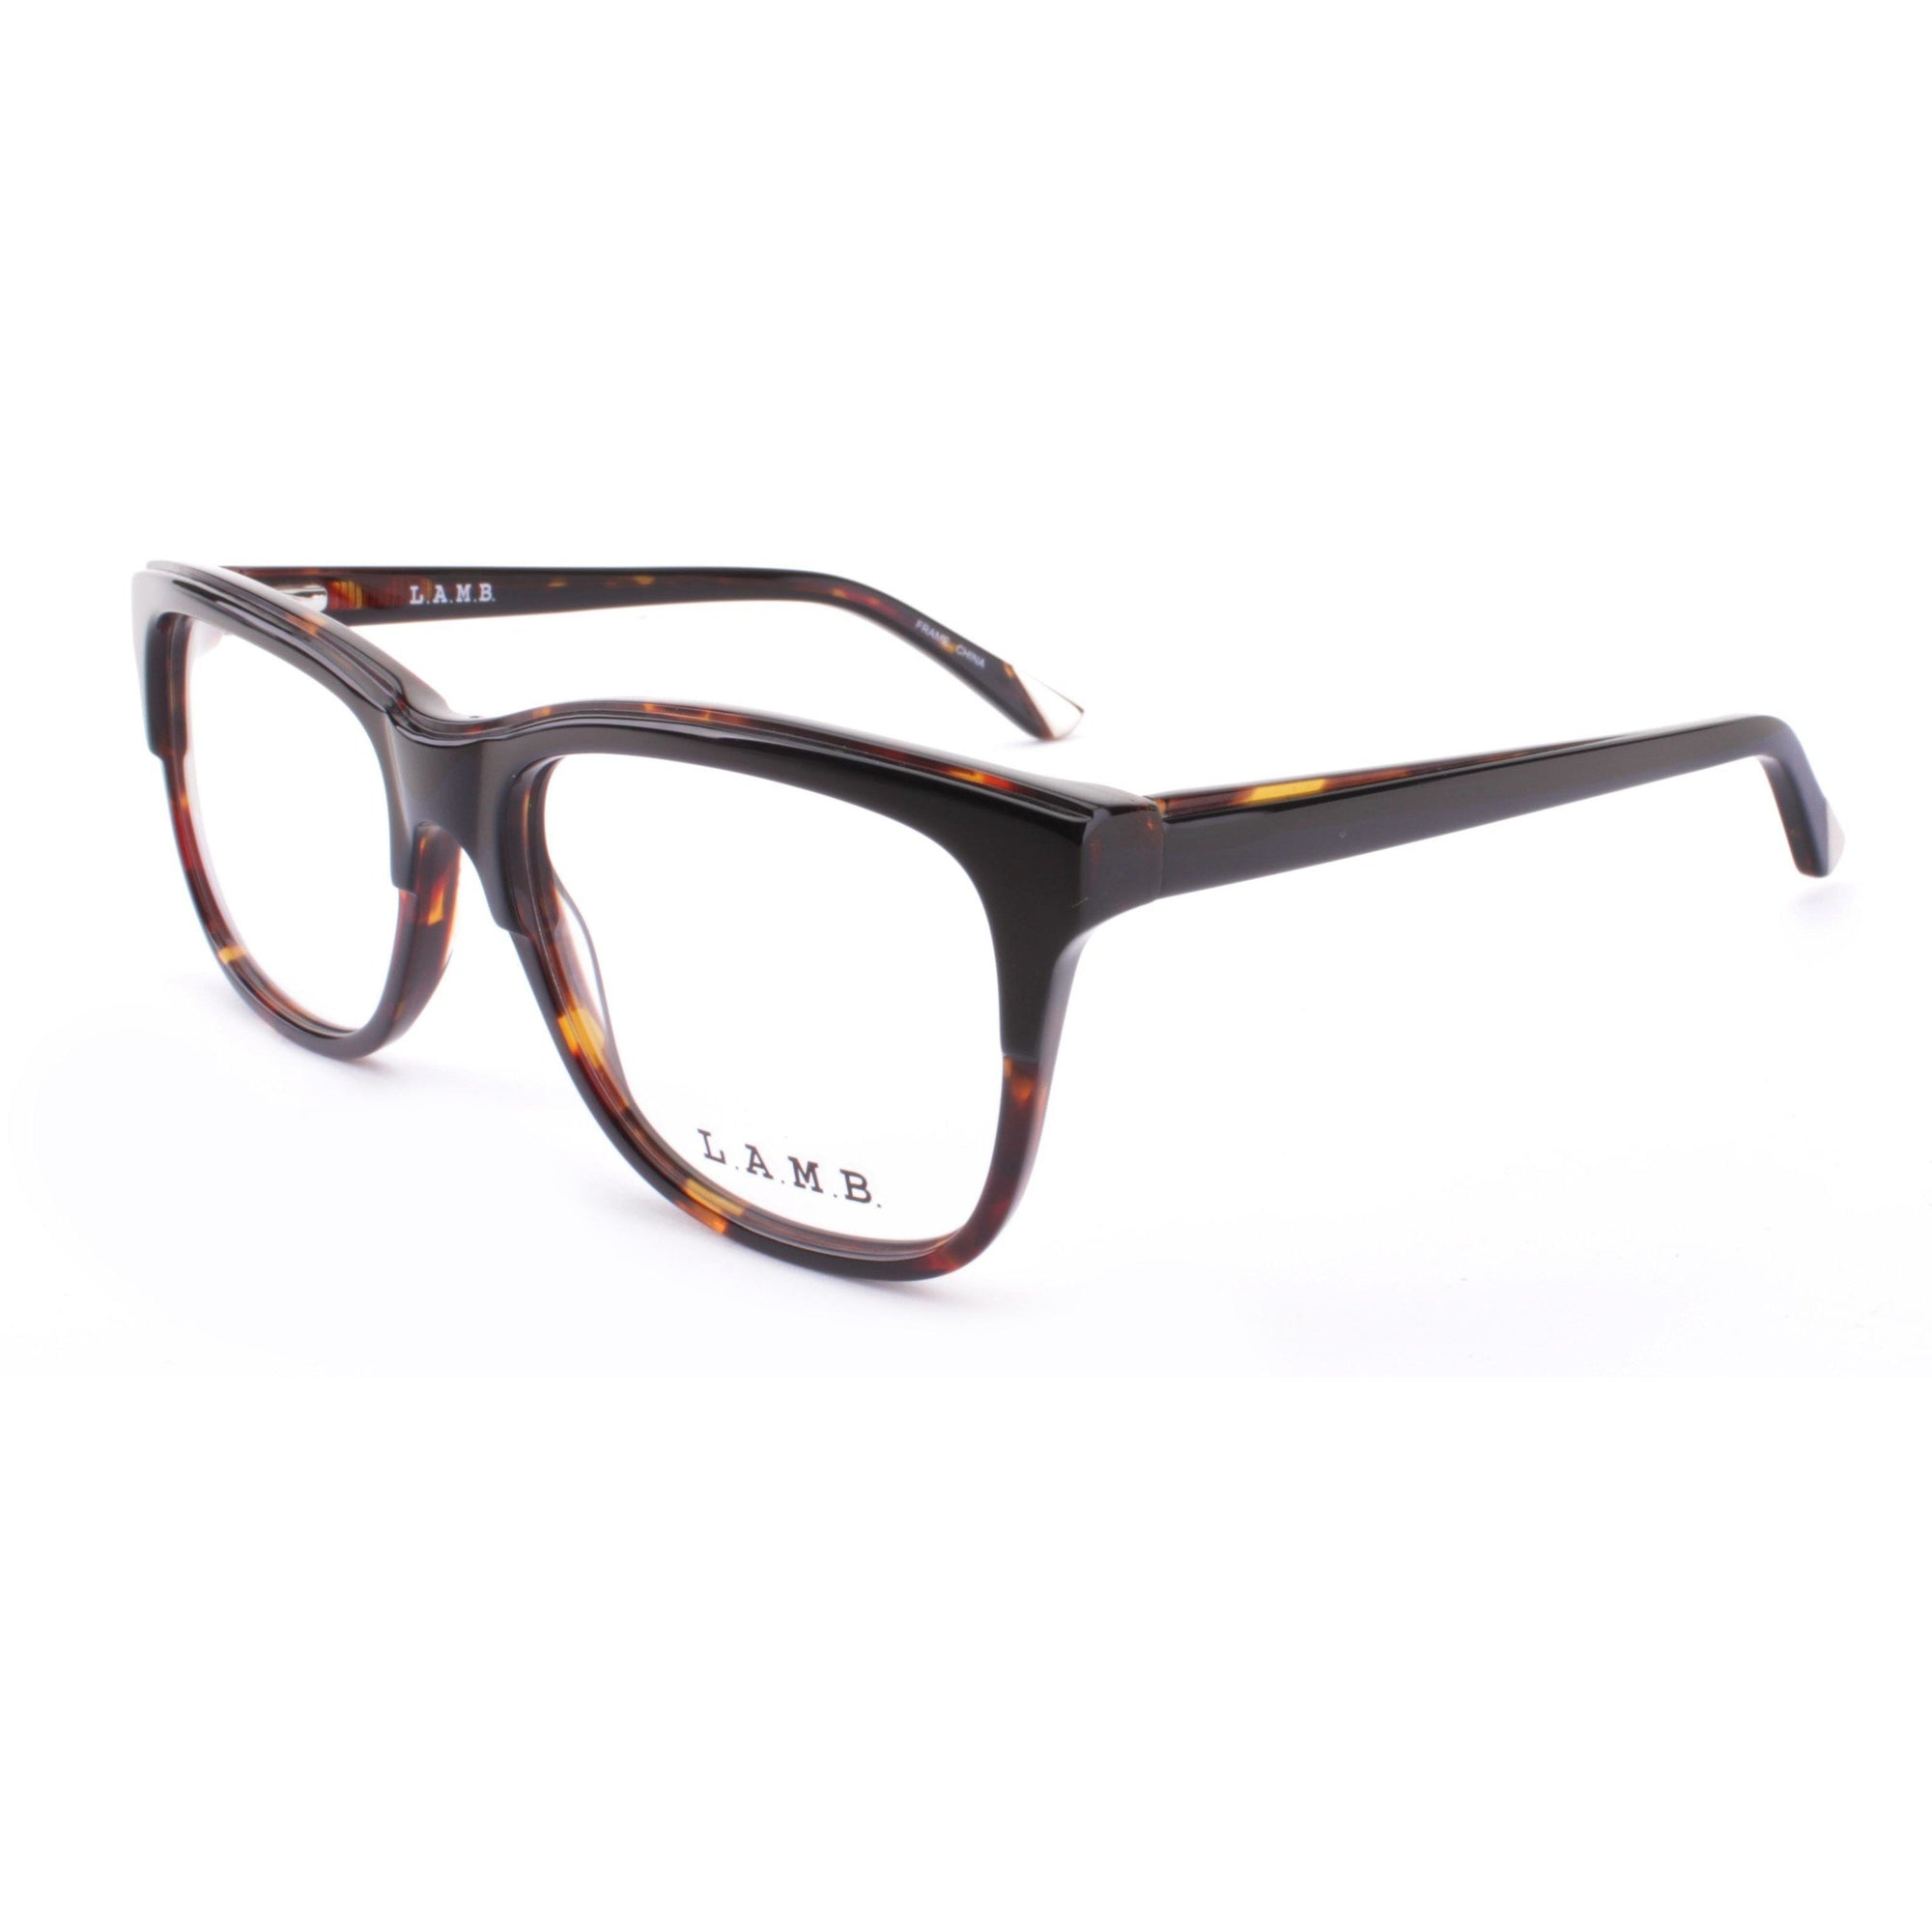 L.A.M.B. La016-Blk Optical L.A.M.B.